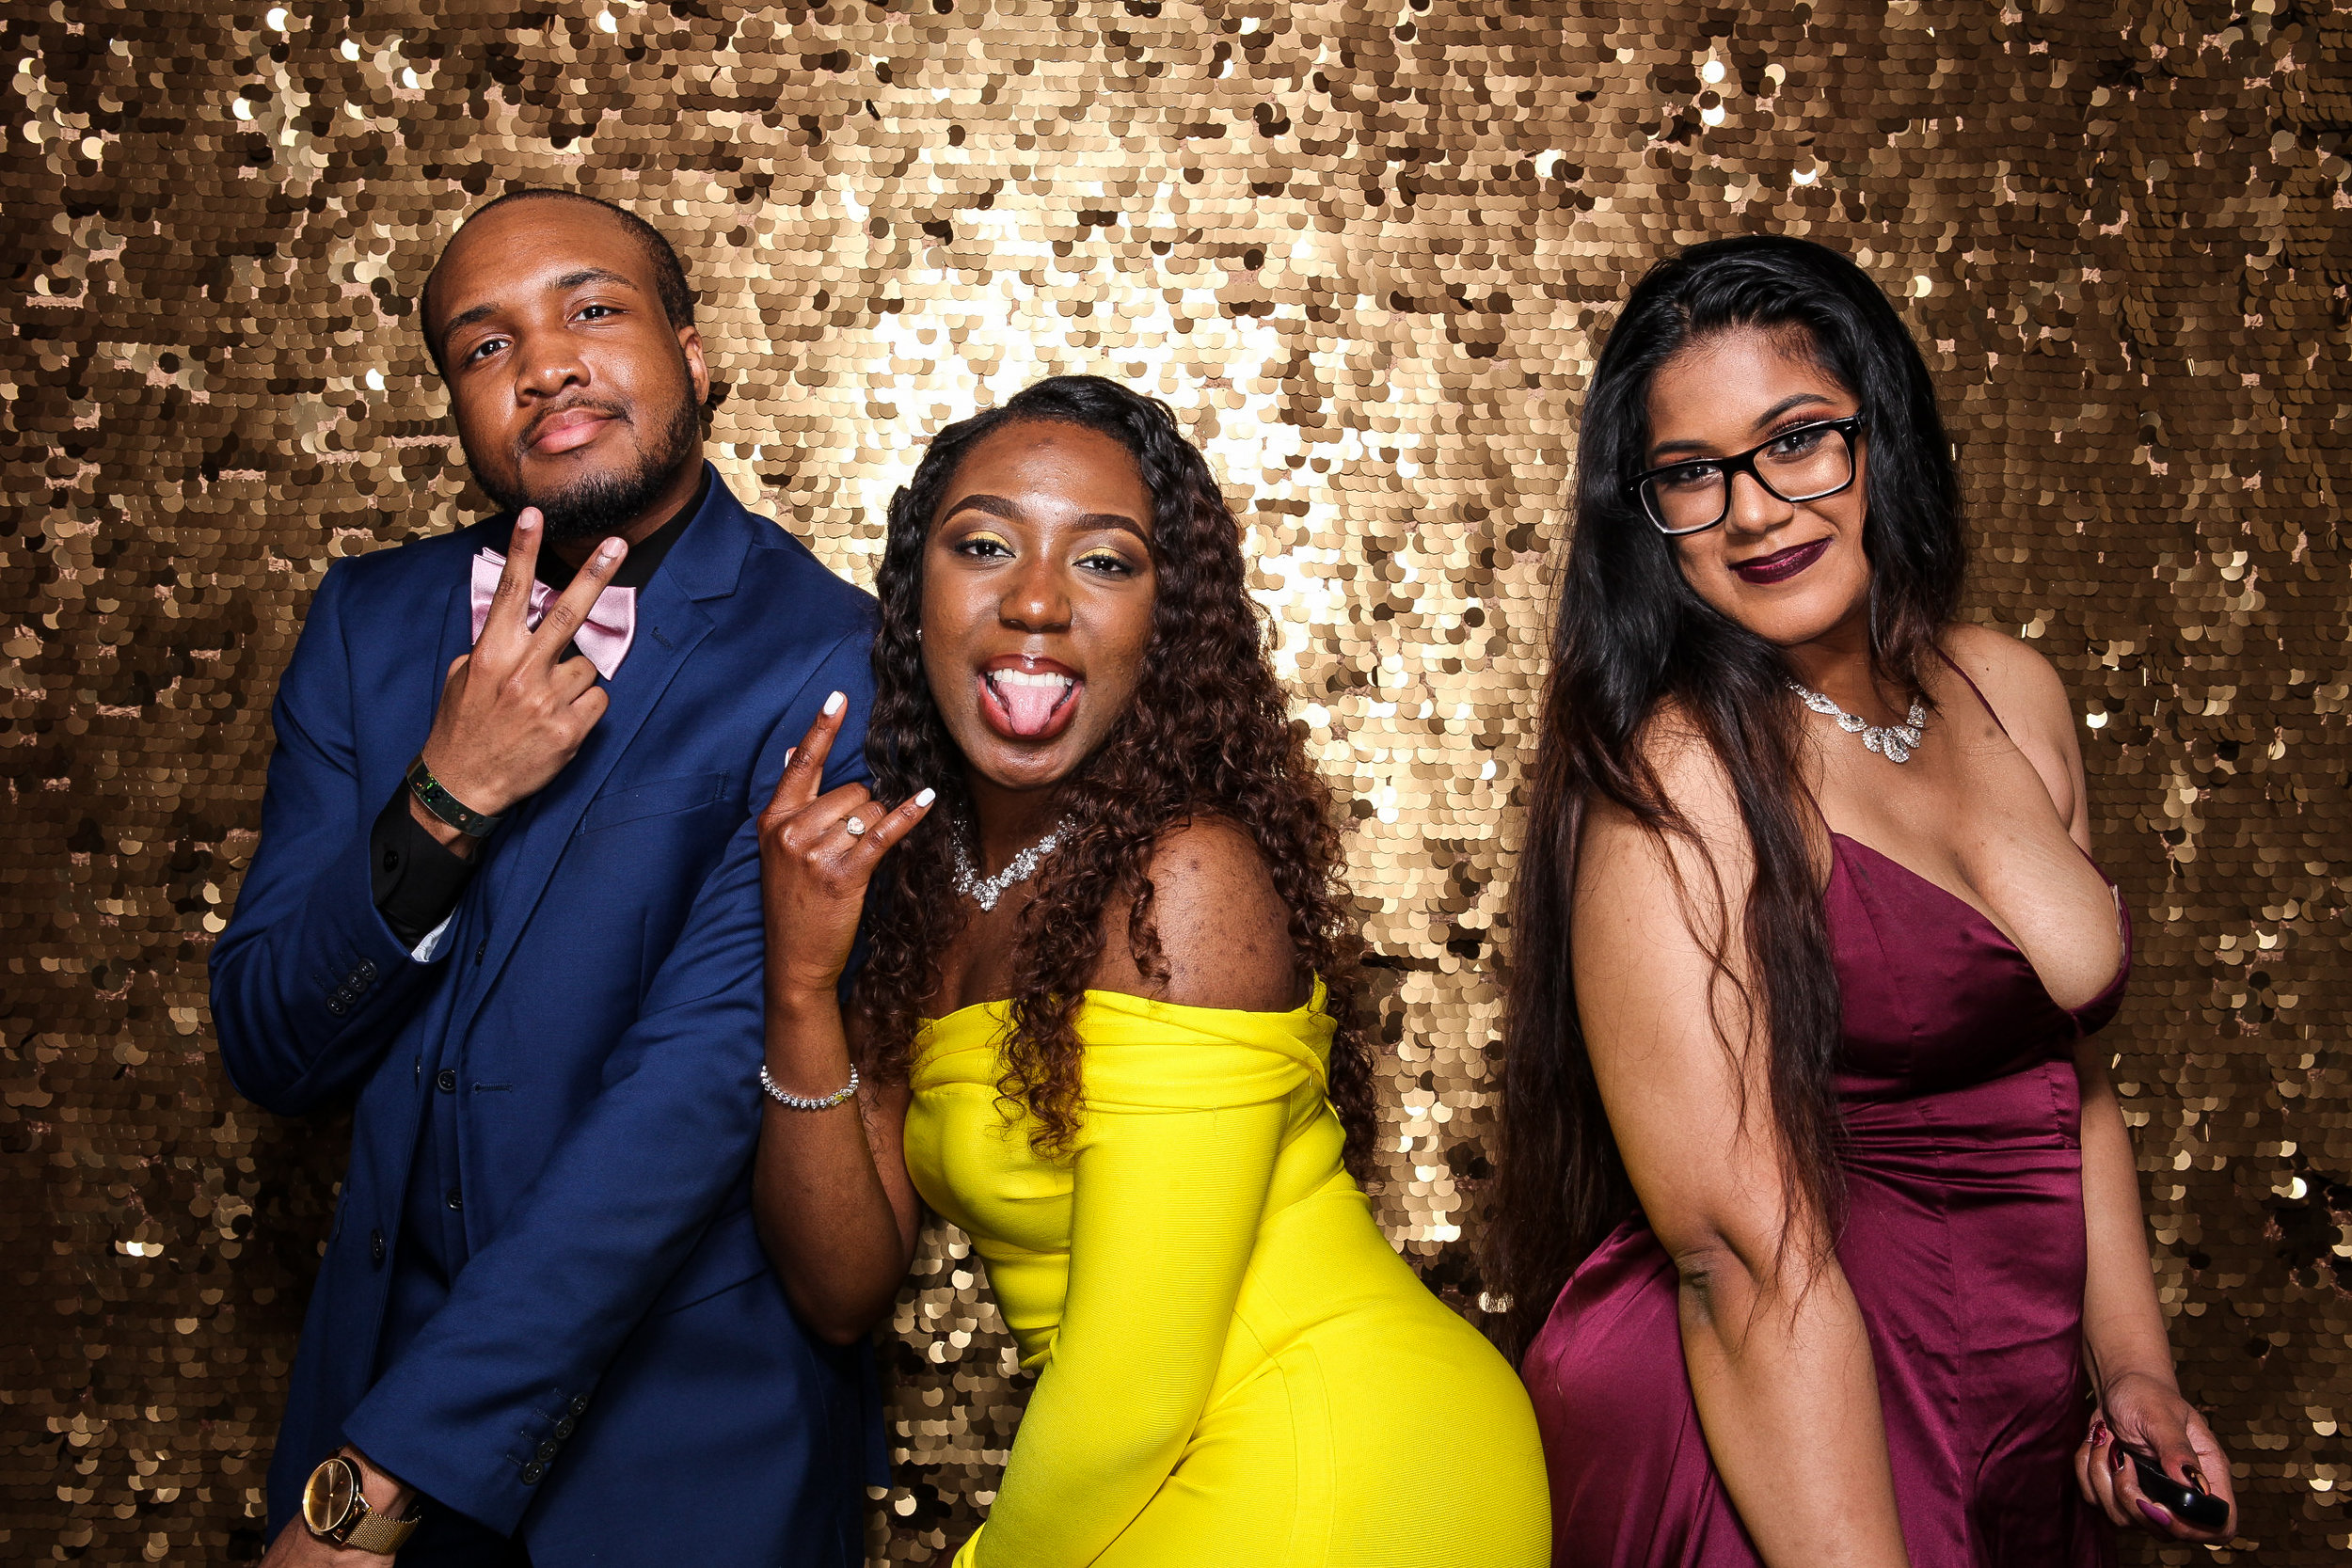 20190503_Adelphi_Senior_Formal-225.jpg